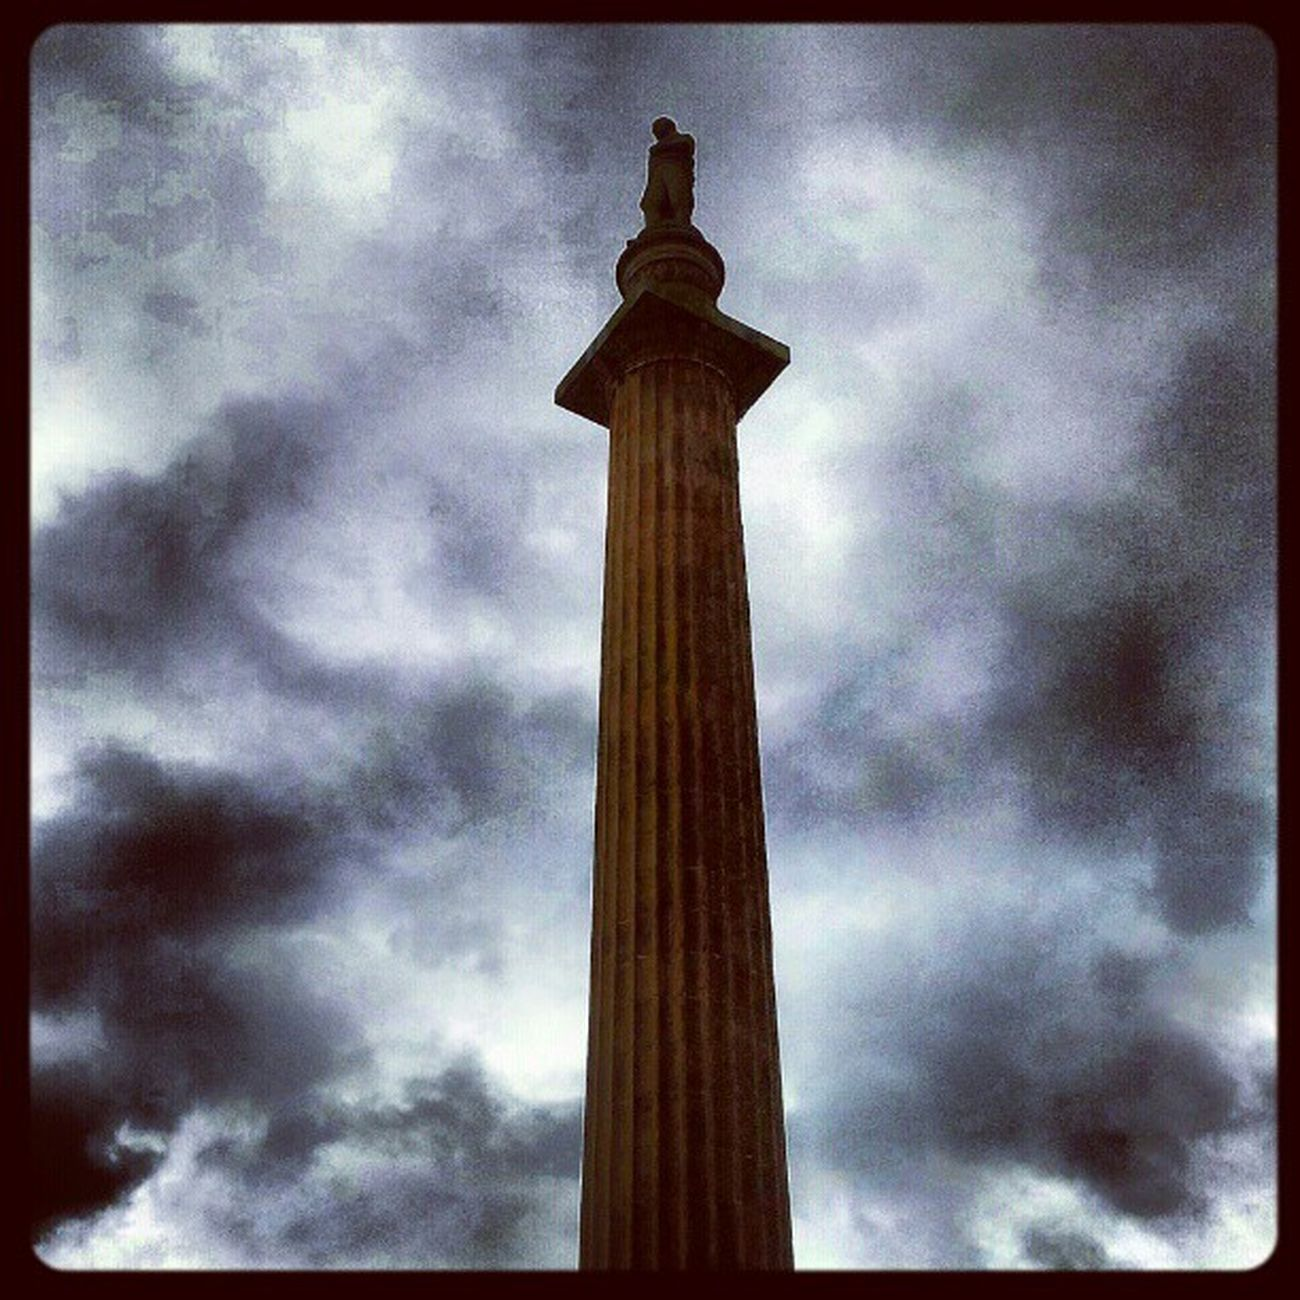 'Look up' SirWalterScott Column Georgesquare Glasgow  Scotland Historical Architecture architectureporn Cloudporn sky skyporn igscout igscotland igtube igaddict Igers igdaily Tagstagram most_deserving instagood instamob instagrammers picoftheday bestoftheday Primeshots